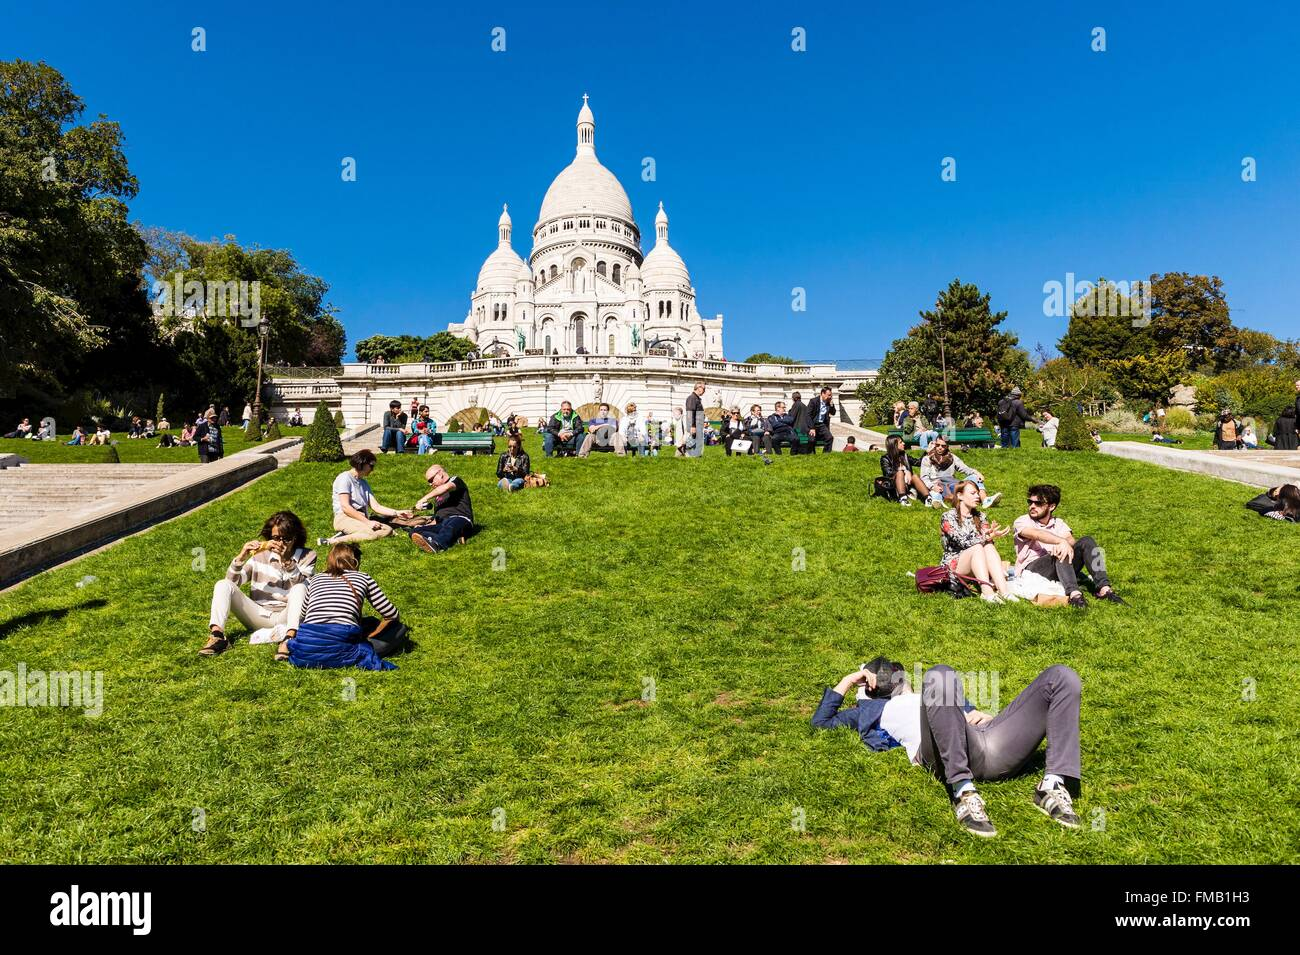 France, Paris, the hill of Montmartre and the Sacre Coeur - Stock Image